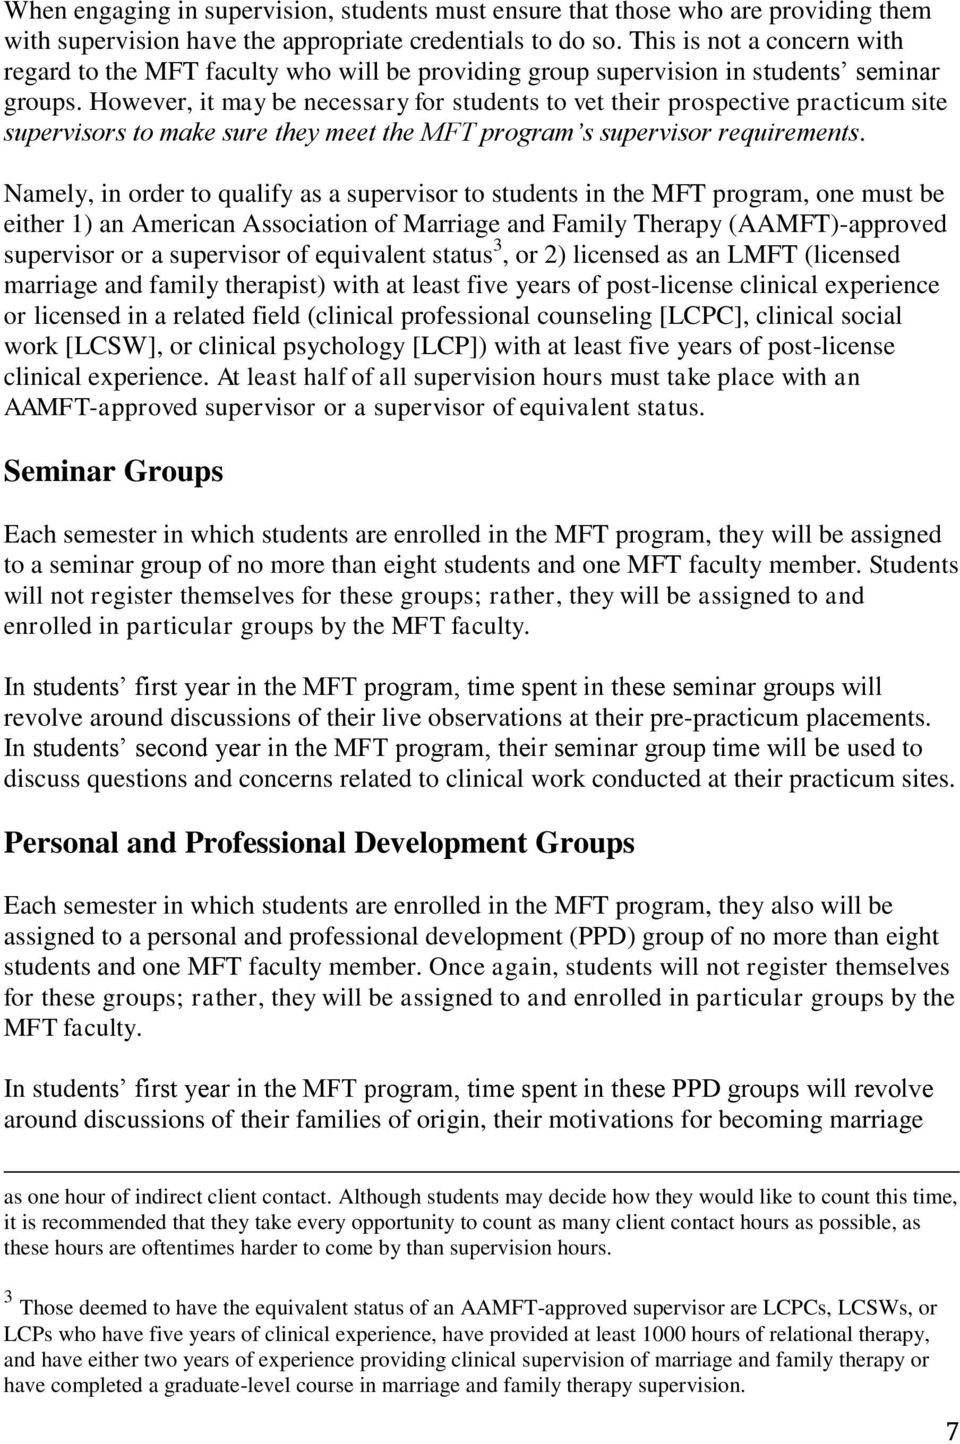 However, it may be necessary for students to vet their prospective practicum site supervisors to make sure they meet the MFT program s supervisor requirements.